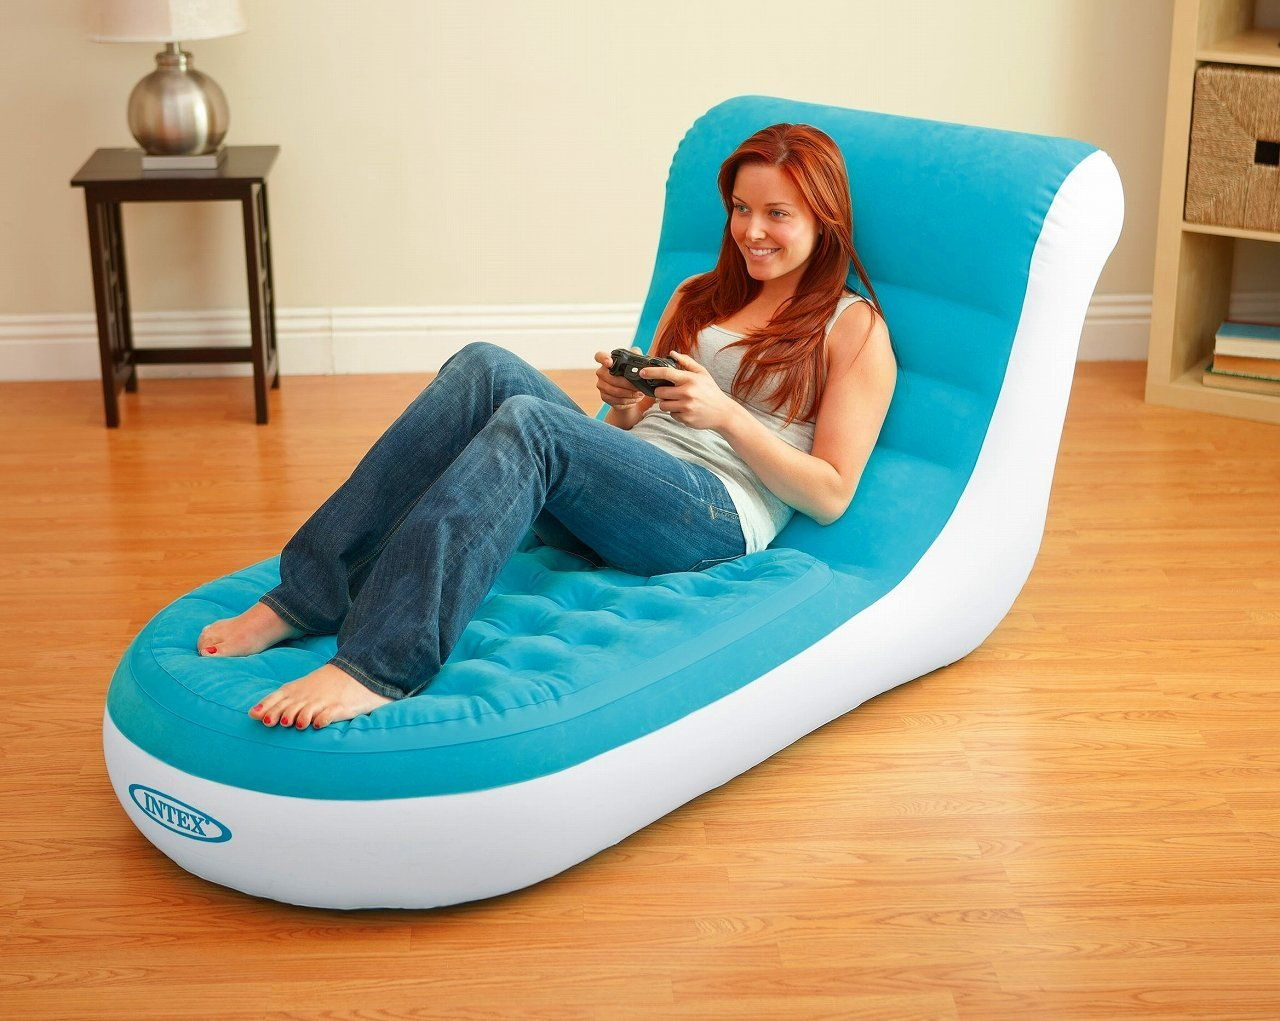 New Intex 68880np Inflatable Splash Lounge Relaxing